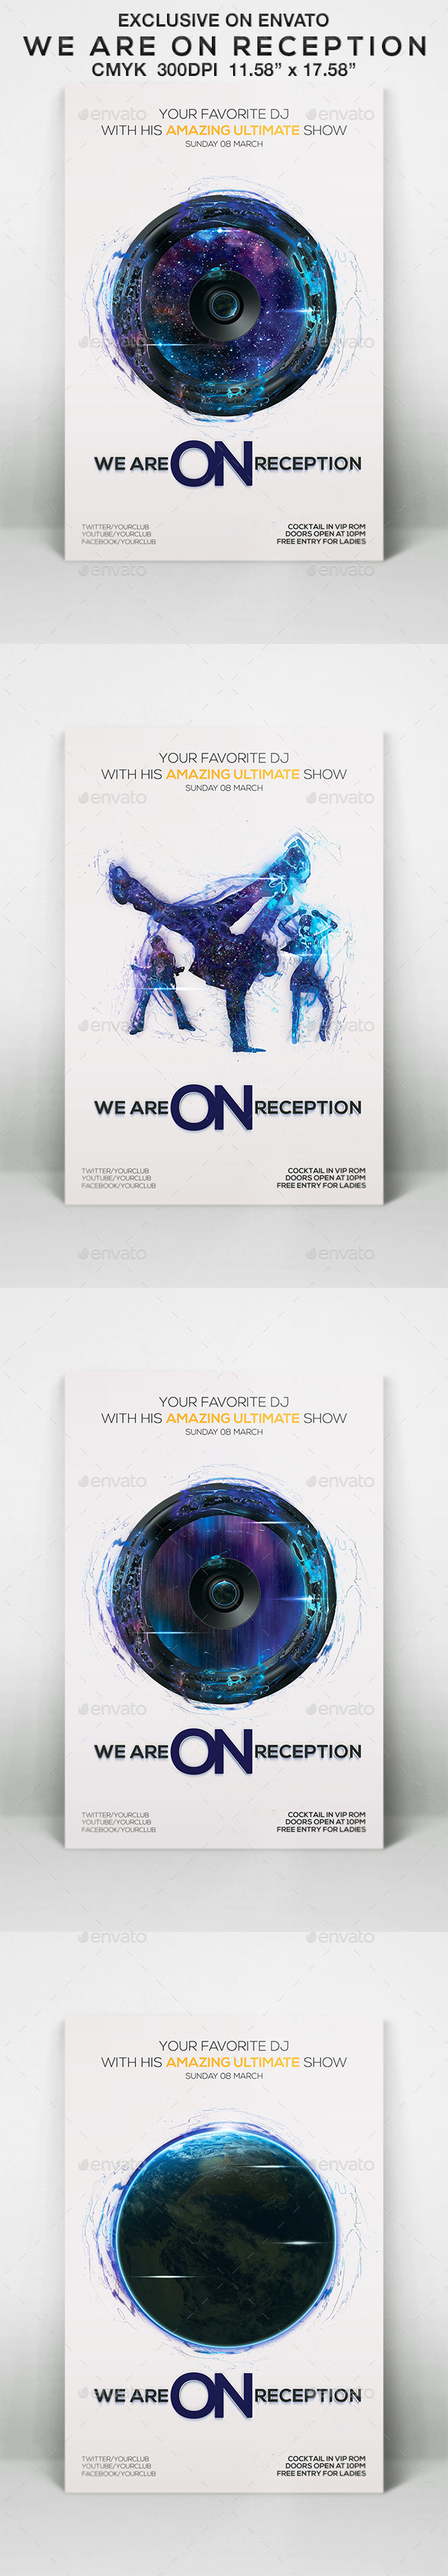 We Are On Reception - Flyers Print Templates